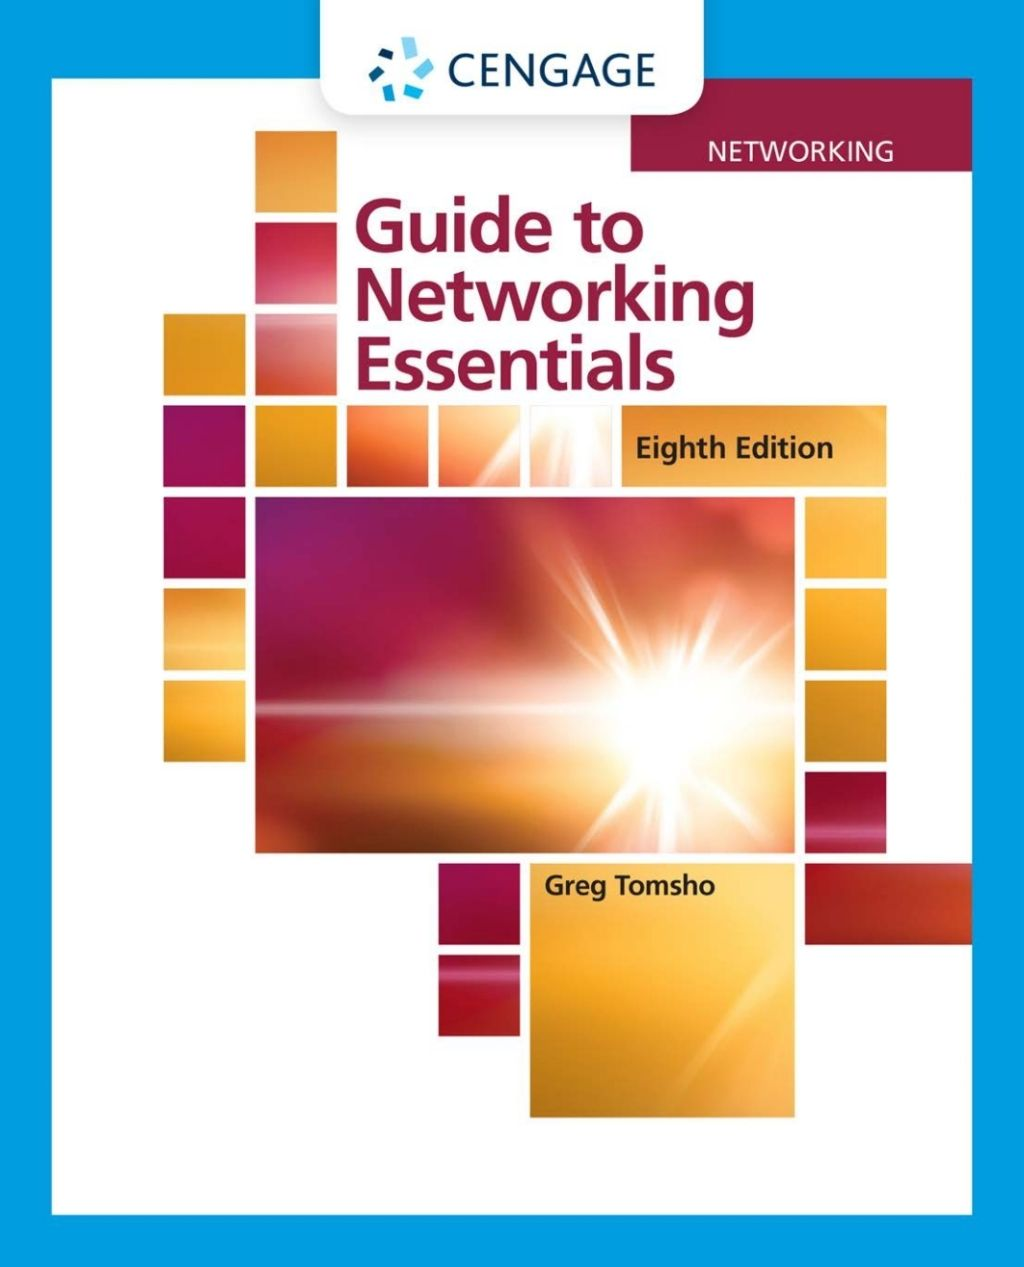 Guide To Networking Essentials 8th Edition Ebook Rental In 2021 Buy Ebook Ebook Cengage Learning